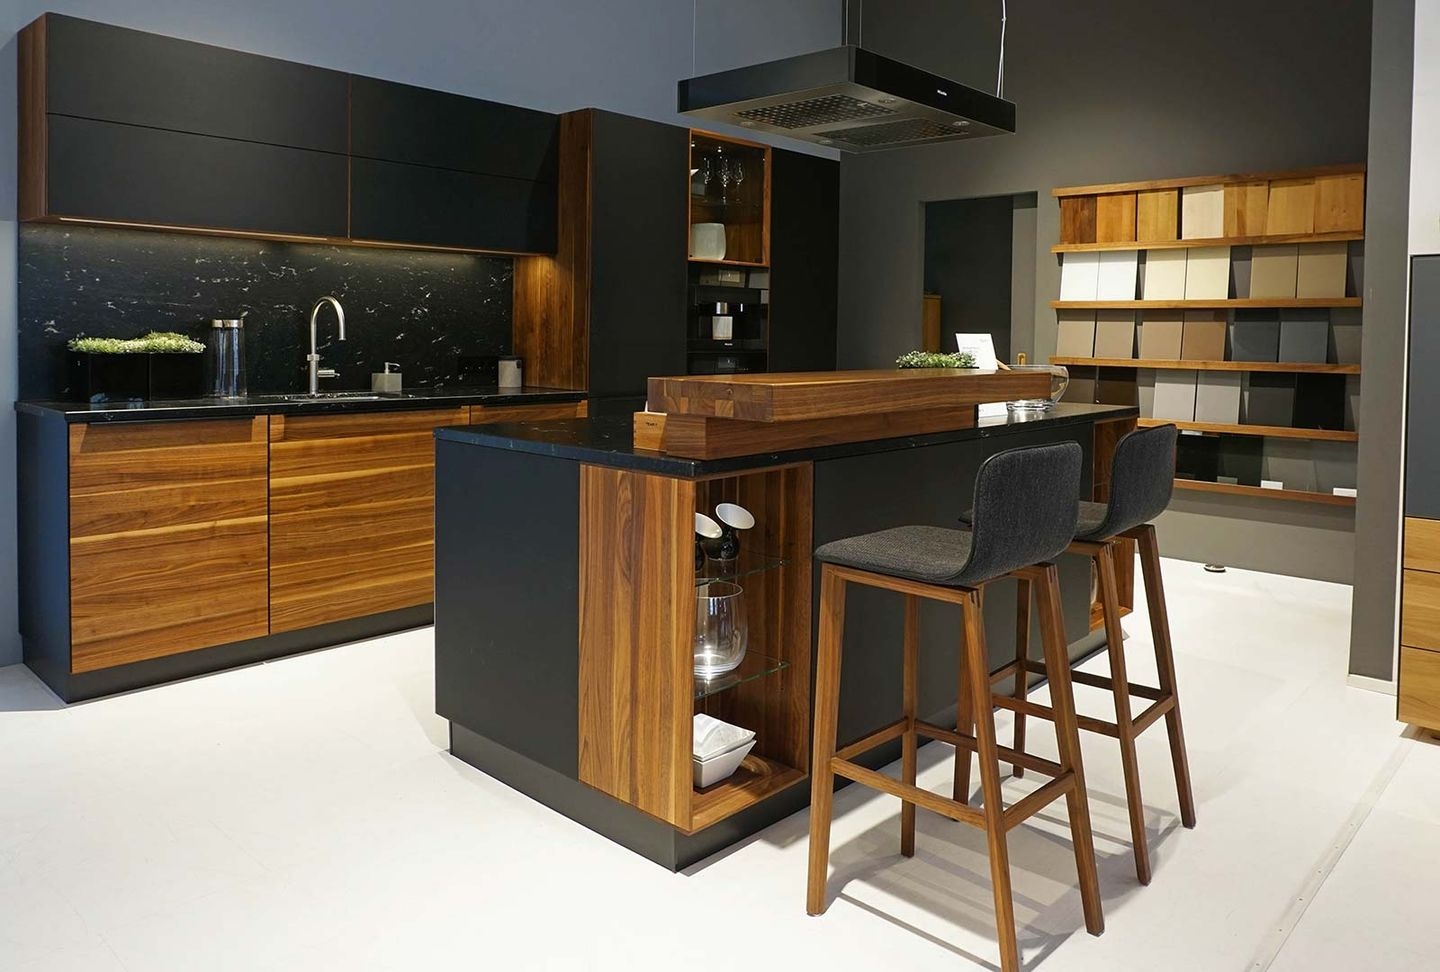 linee black line kitchen in walnut